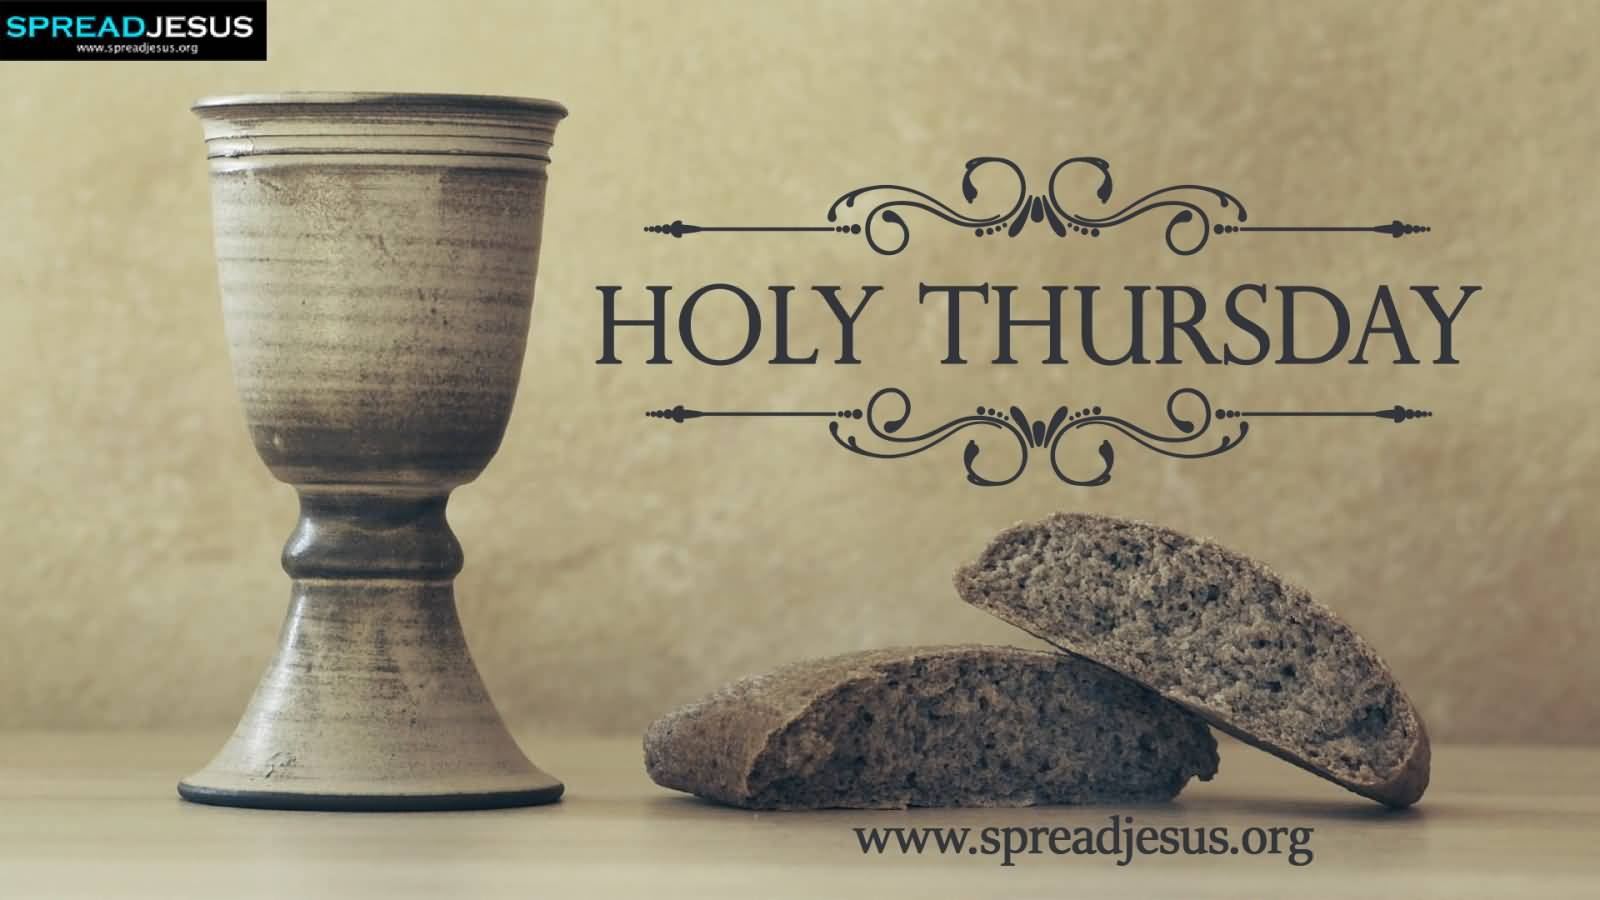 40 adorabl holy thursday wish pictures and photos holy thursday wishes picture m4hsunfo